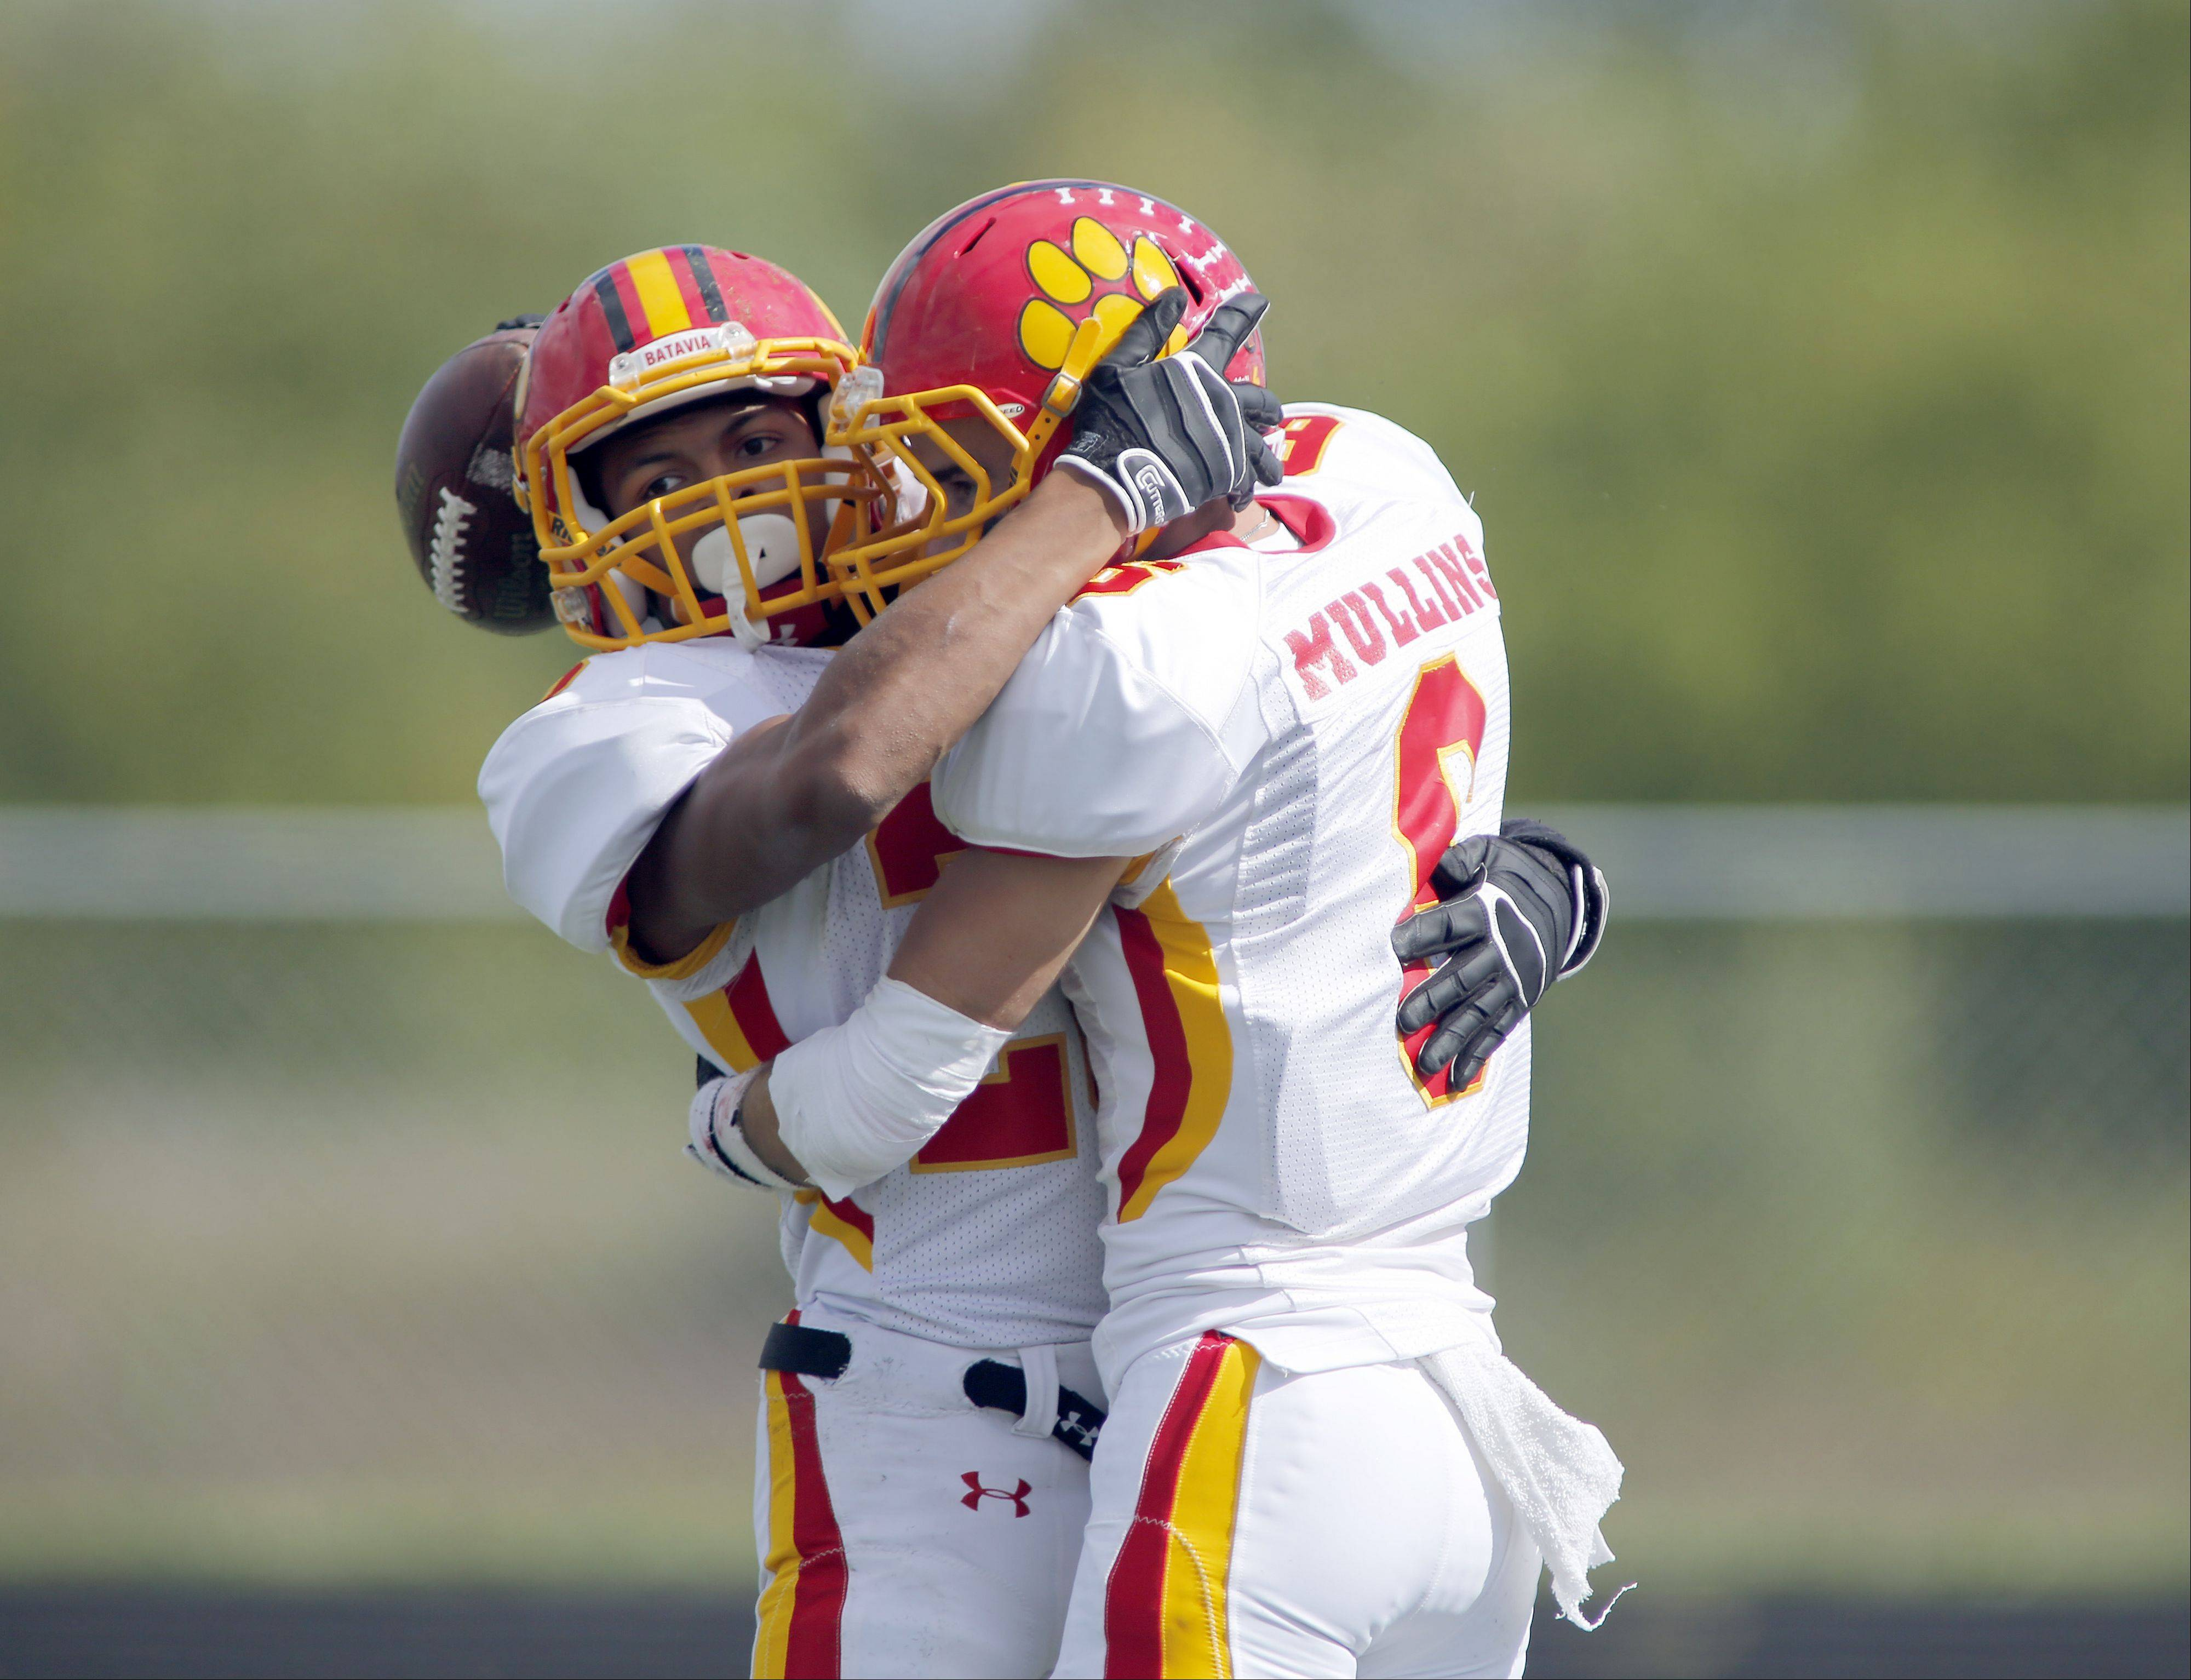 Batavia's Anthony Scaccia, and Rourke Mullins celebrate a touchdown during Batavia at Streamwood football Saturday at Millennium Field at Streamwood High School.